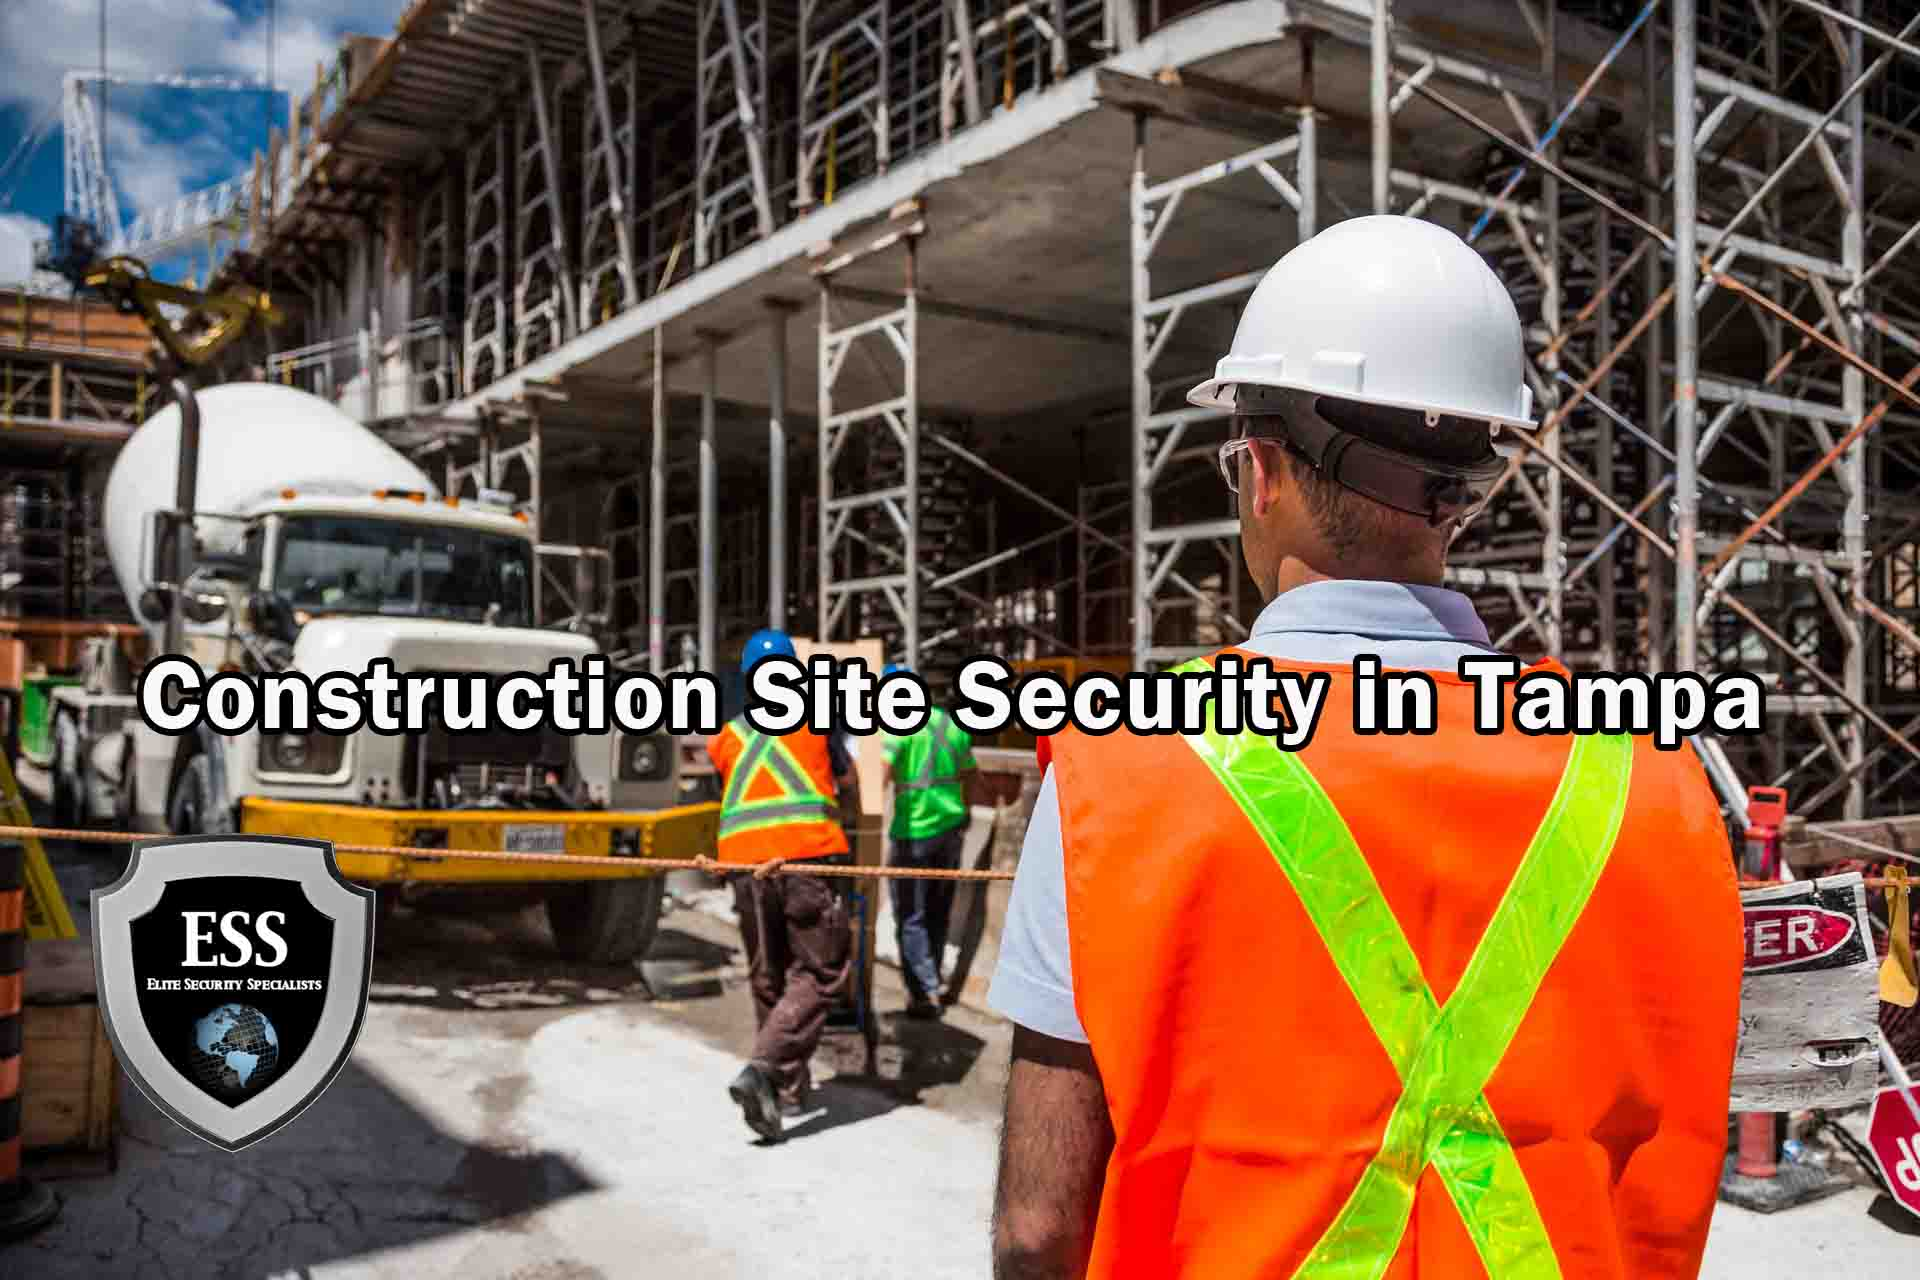 Construction Site Security in Tampa